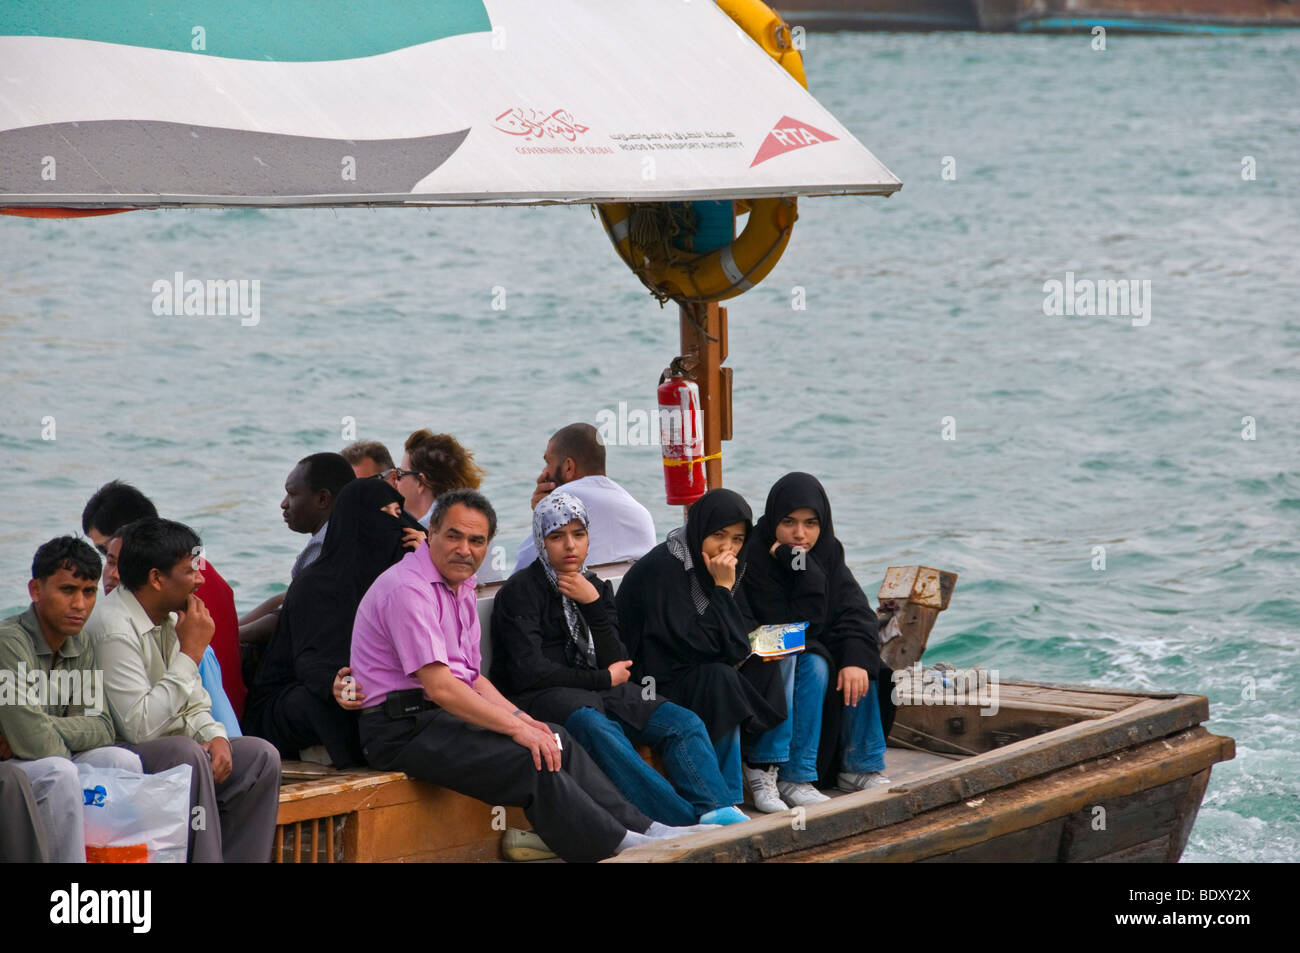 Passengers in Dhow boats in the Dubai creek - Stock Image